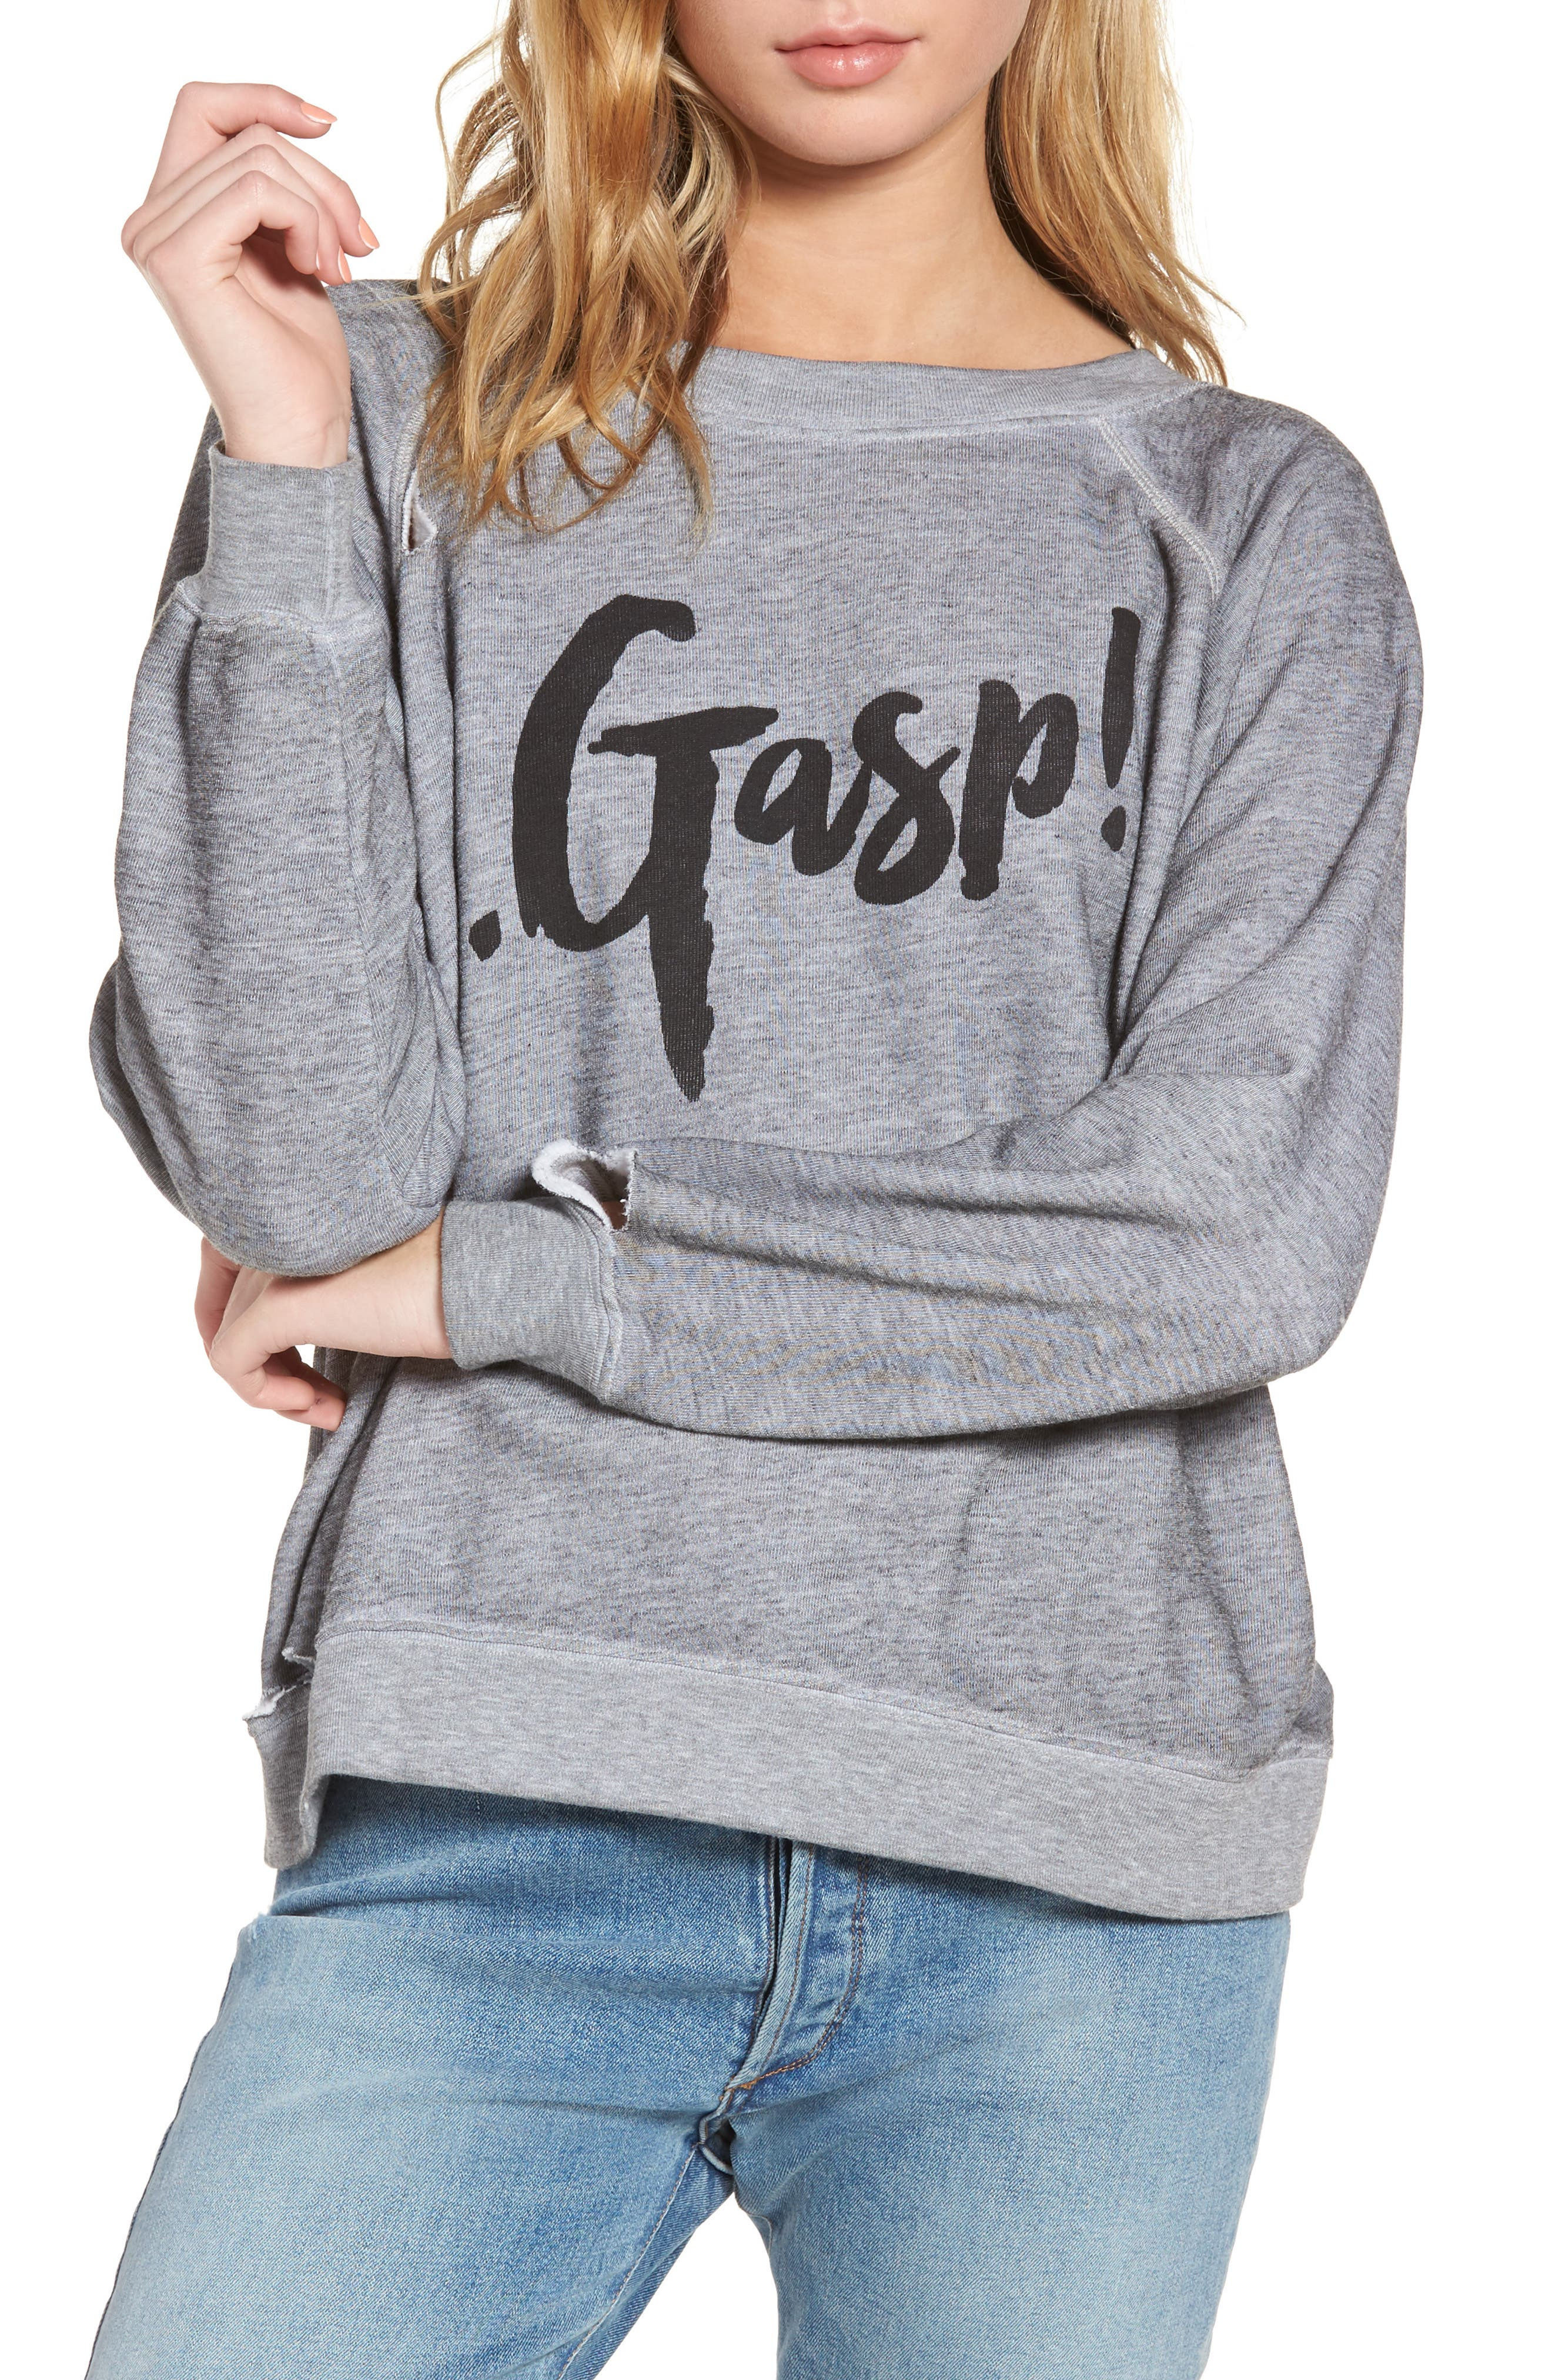 Gasp Thrashed Sommers Sweatshirt,                         Main,                         color, 020